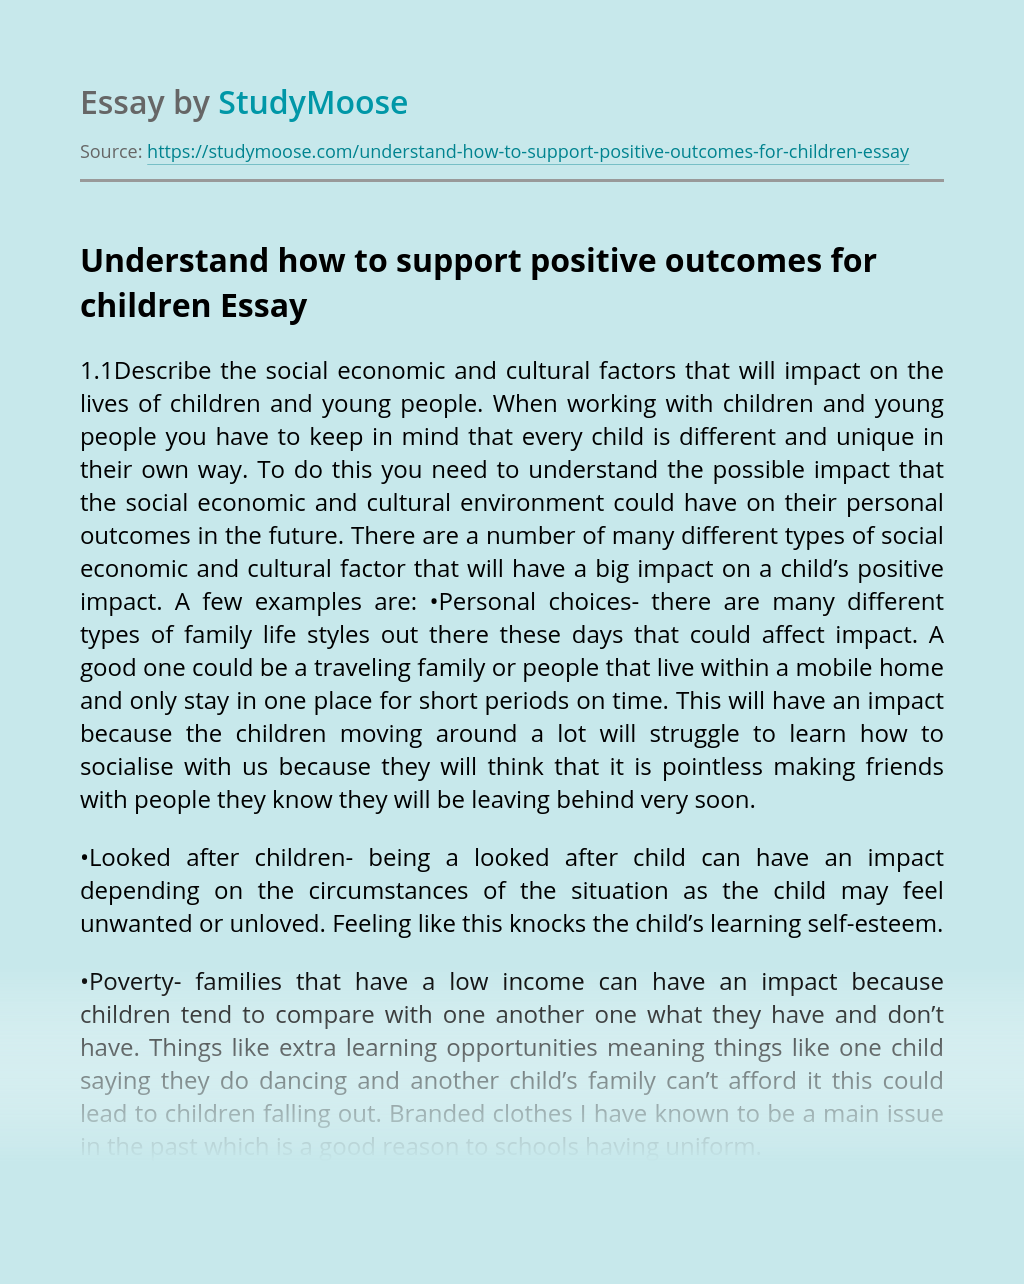 Understand how to support positive outcomes for children